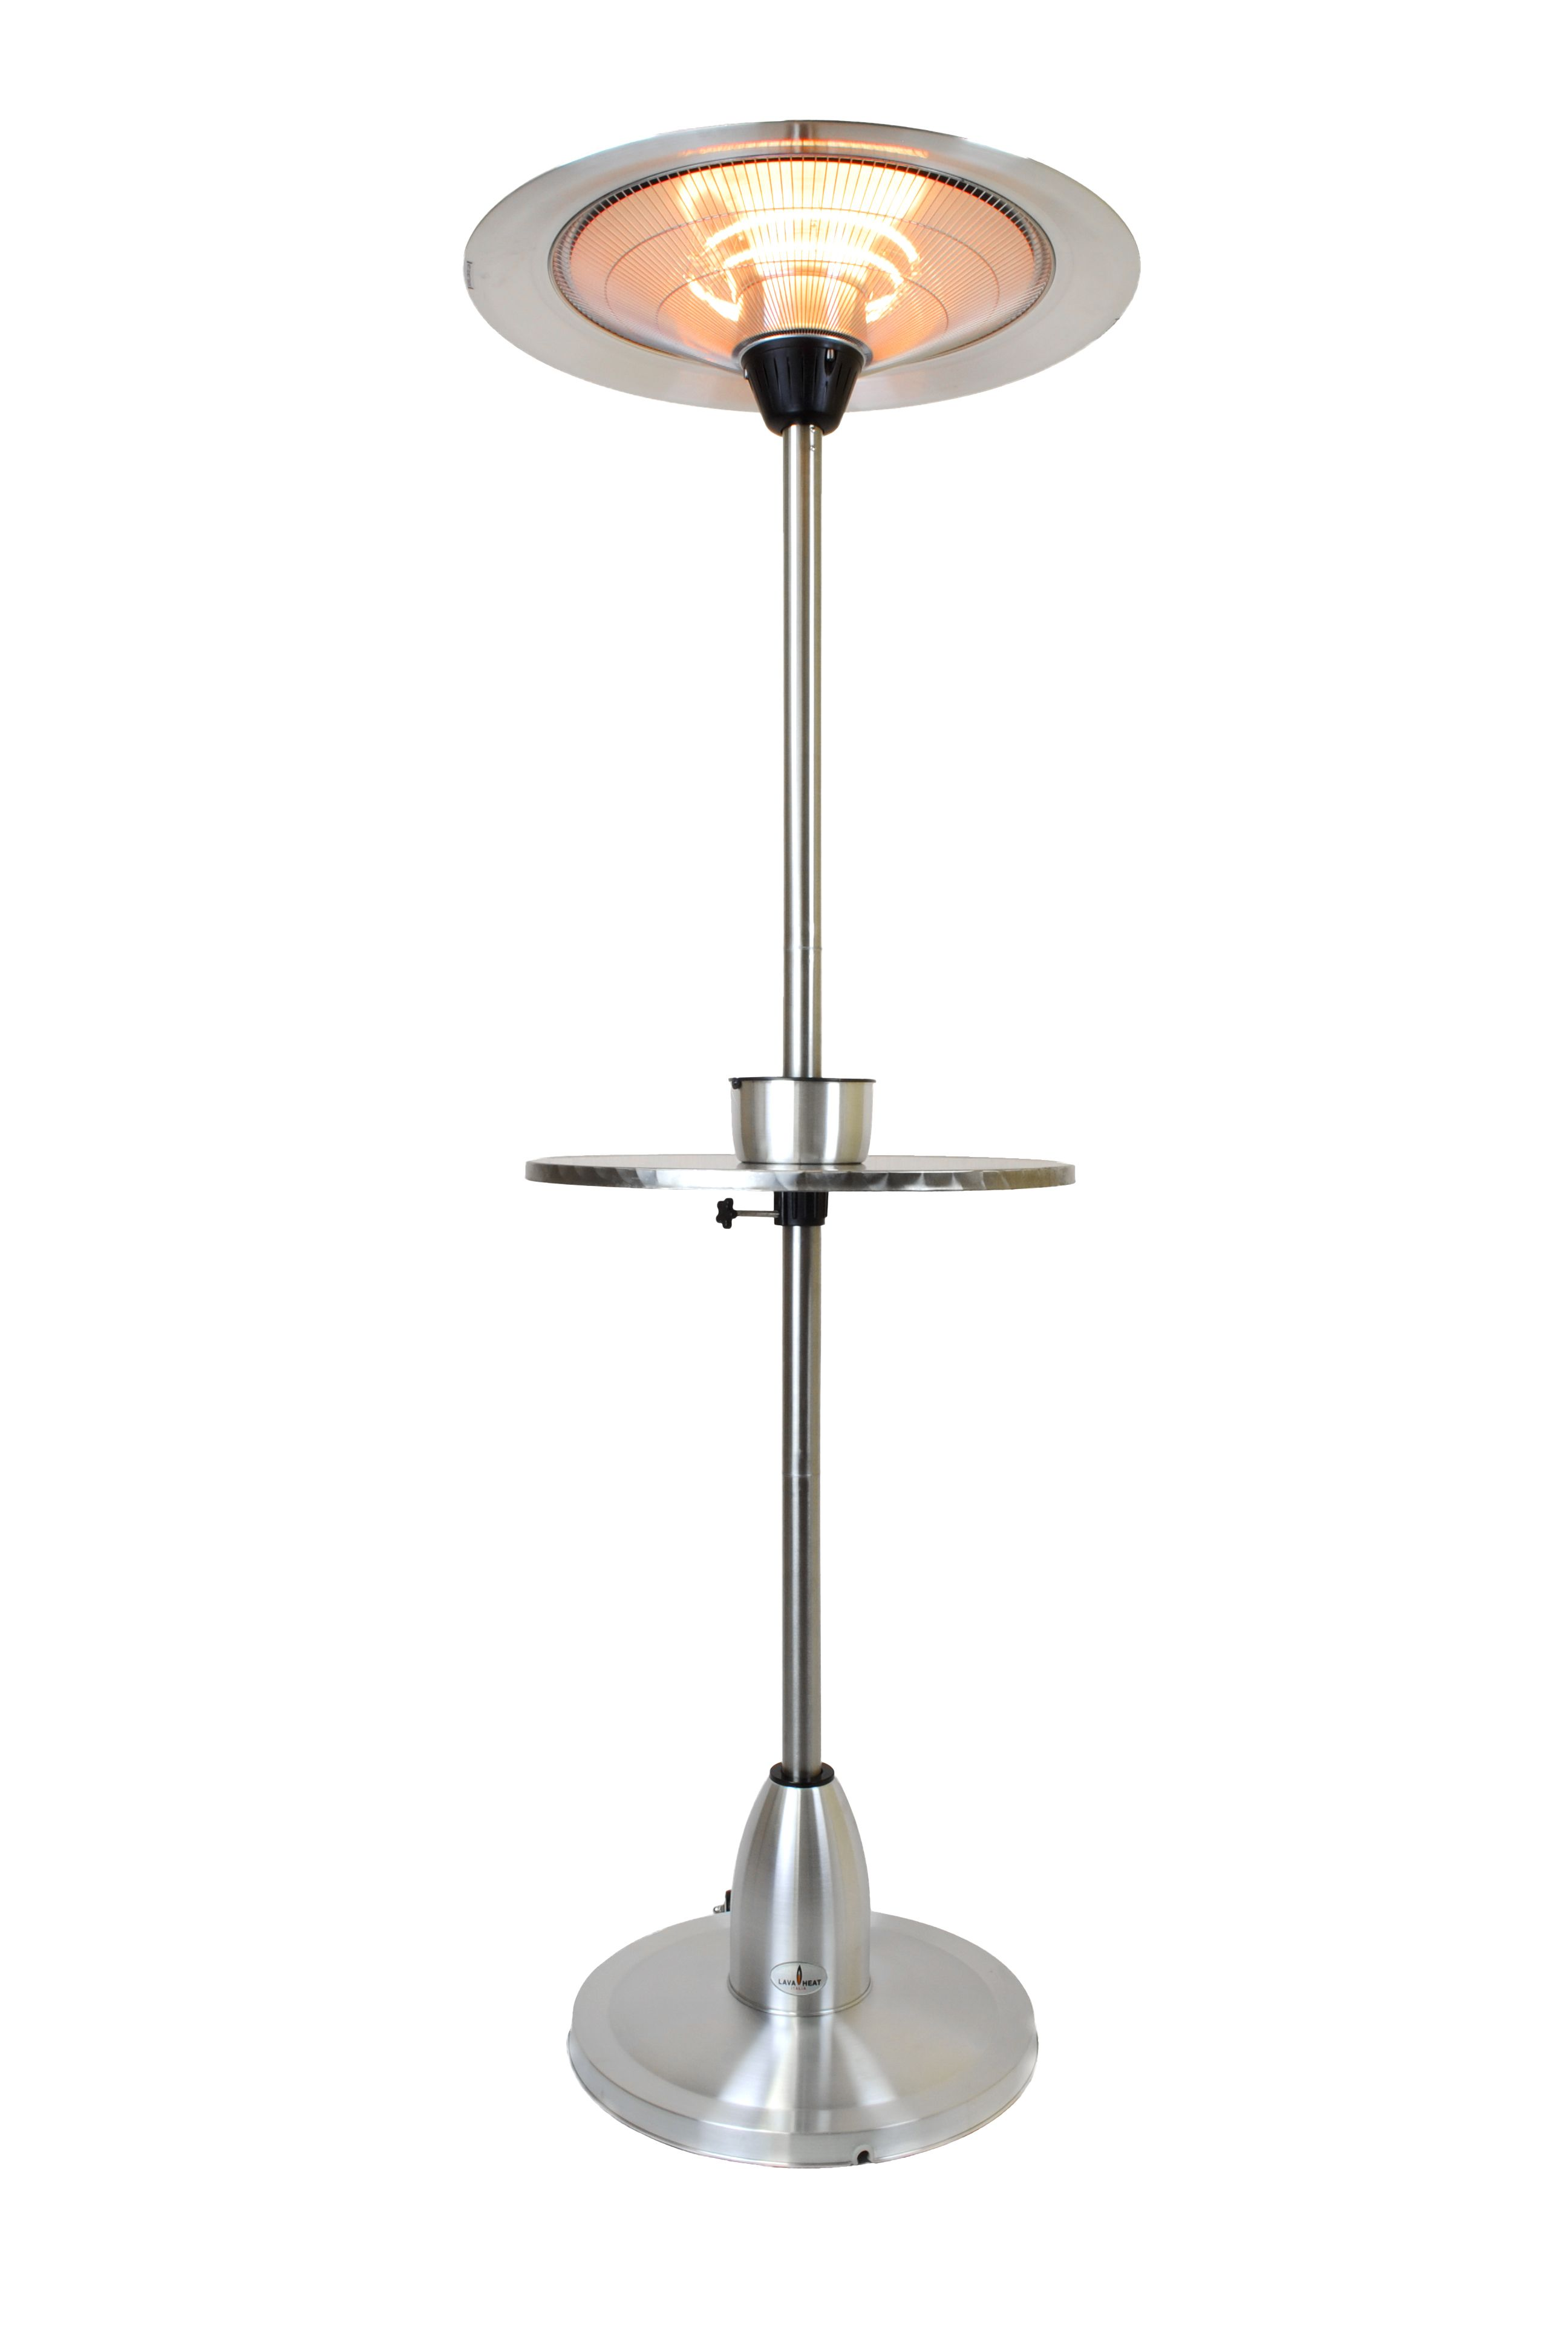 Pub Table Deluxe Patio Heater Stainless Steel Patio Heater Fireplace Mantels Surrounds Heater